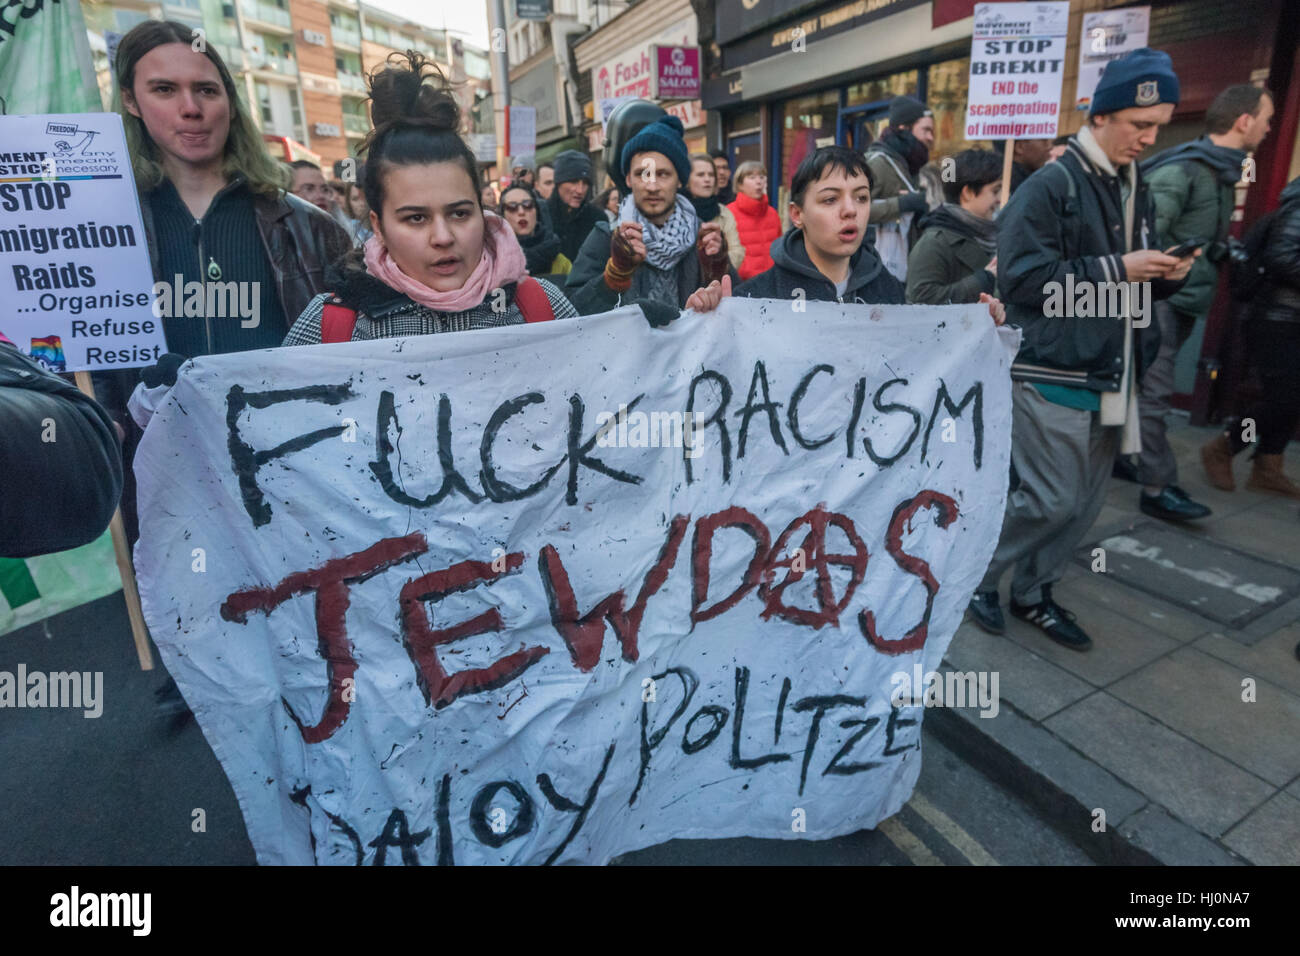 London, UK. 21st January, 2017.  Radical Jewish diaspora group Jewdas banner on the Movement for Justice march up - Stock Image